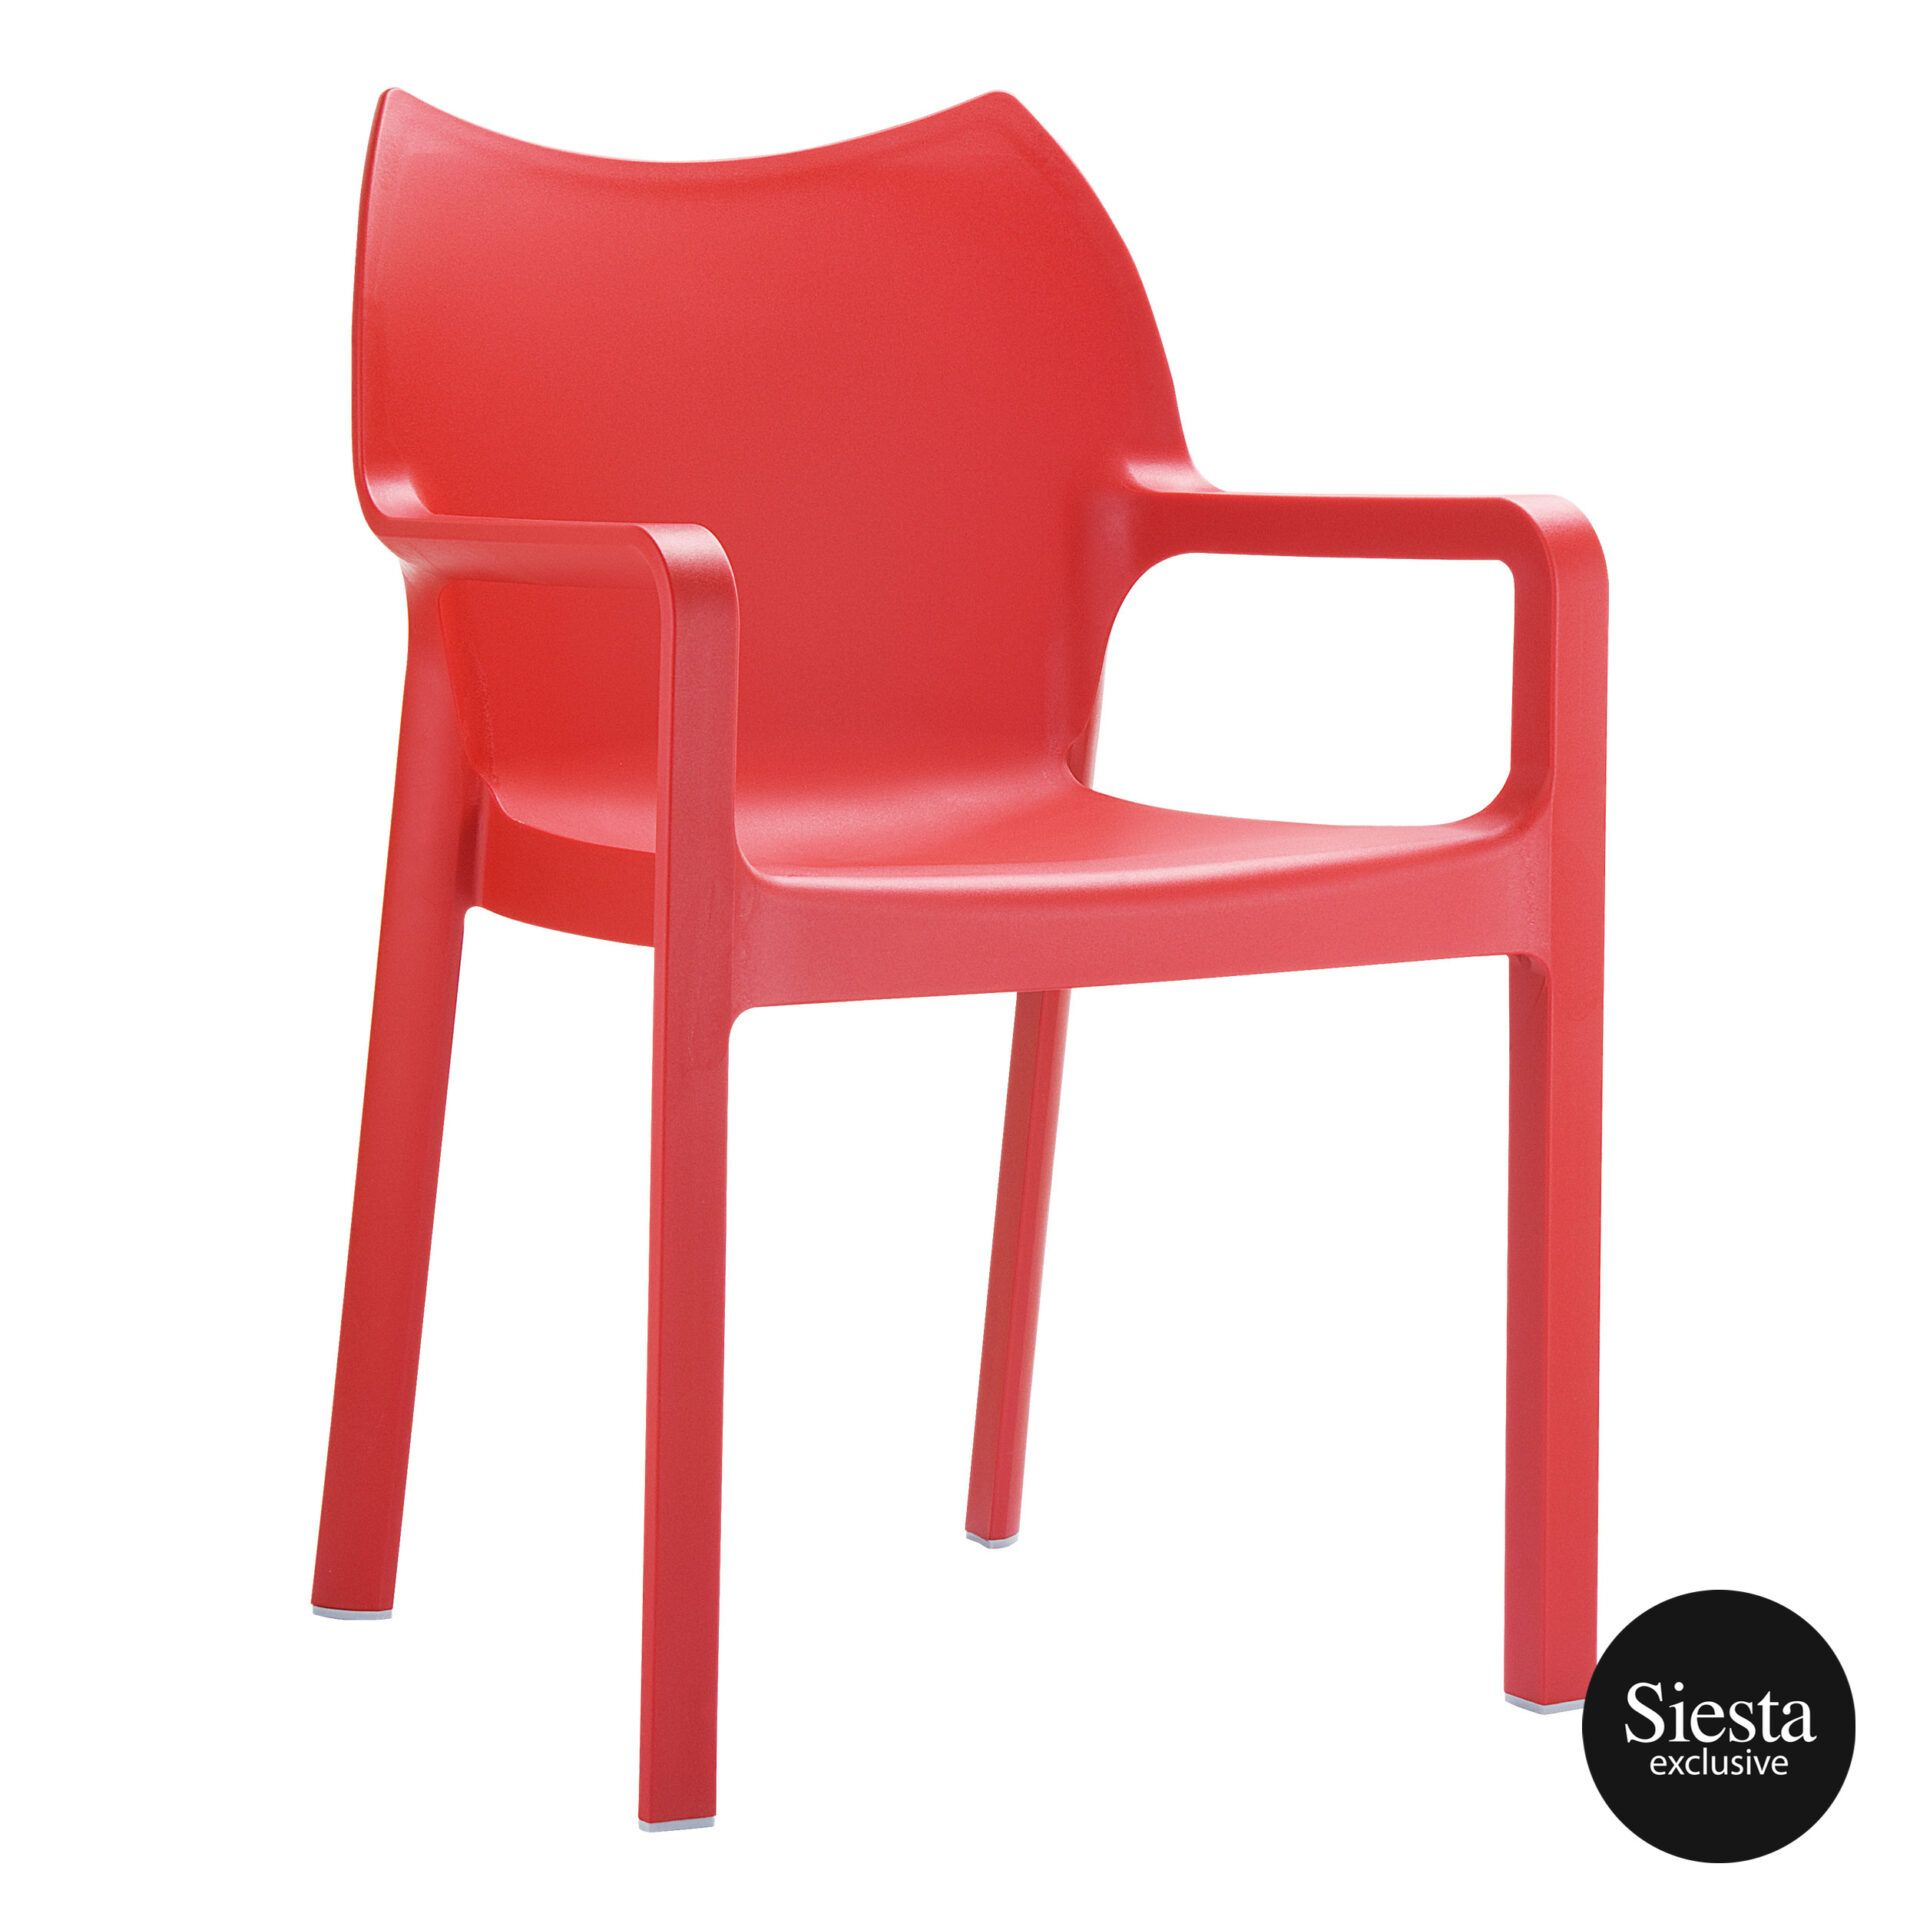 outdoor plastic seating diva chair red front side 1